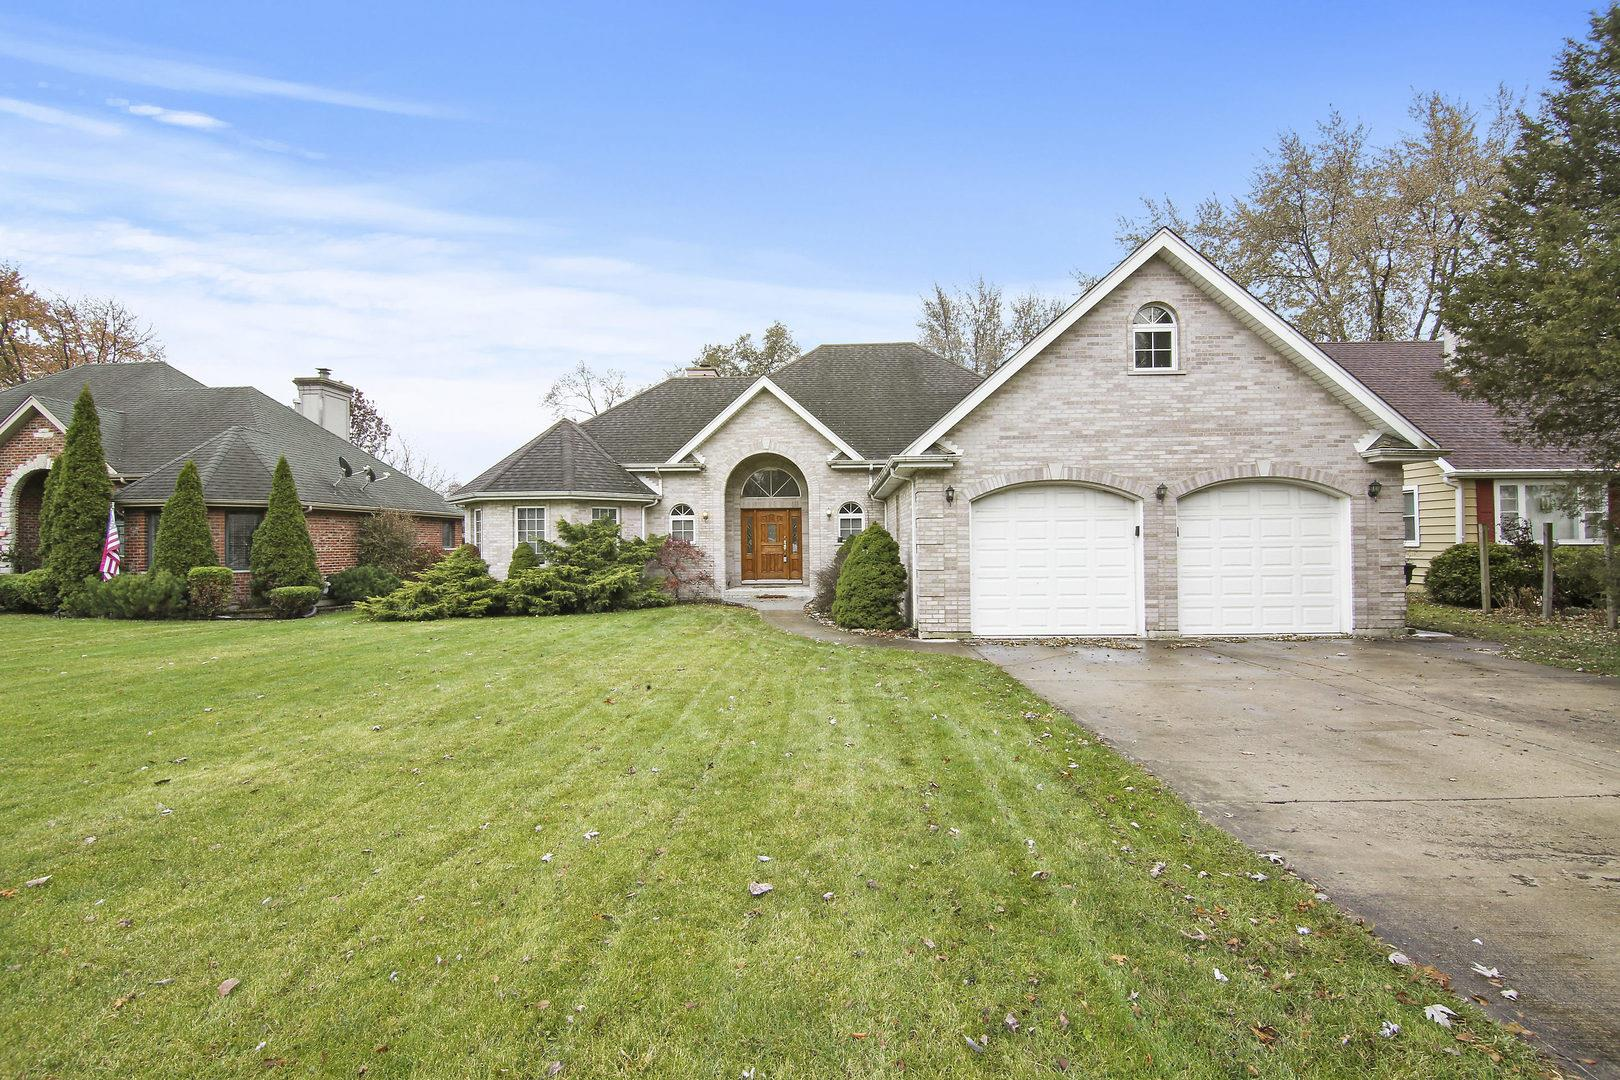 8845 W 83rd Place, Justice, IL 60458 - #: 10905912